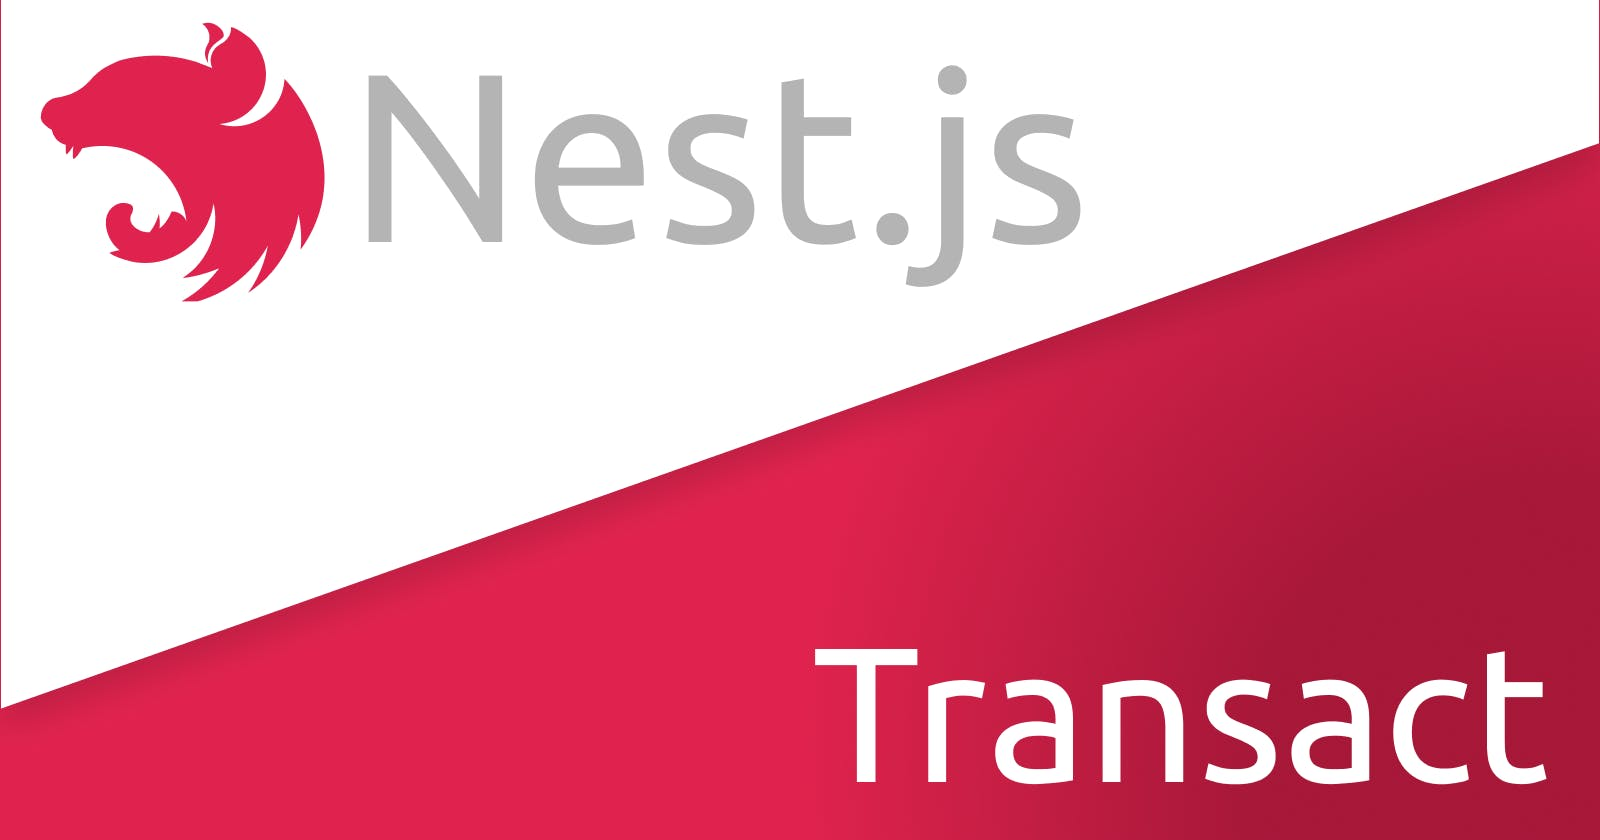 The easiest way to make transactions in Nest.js